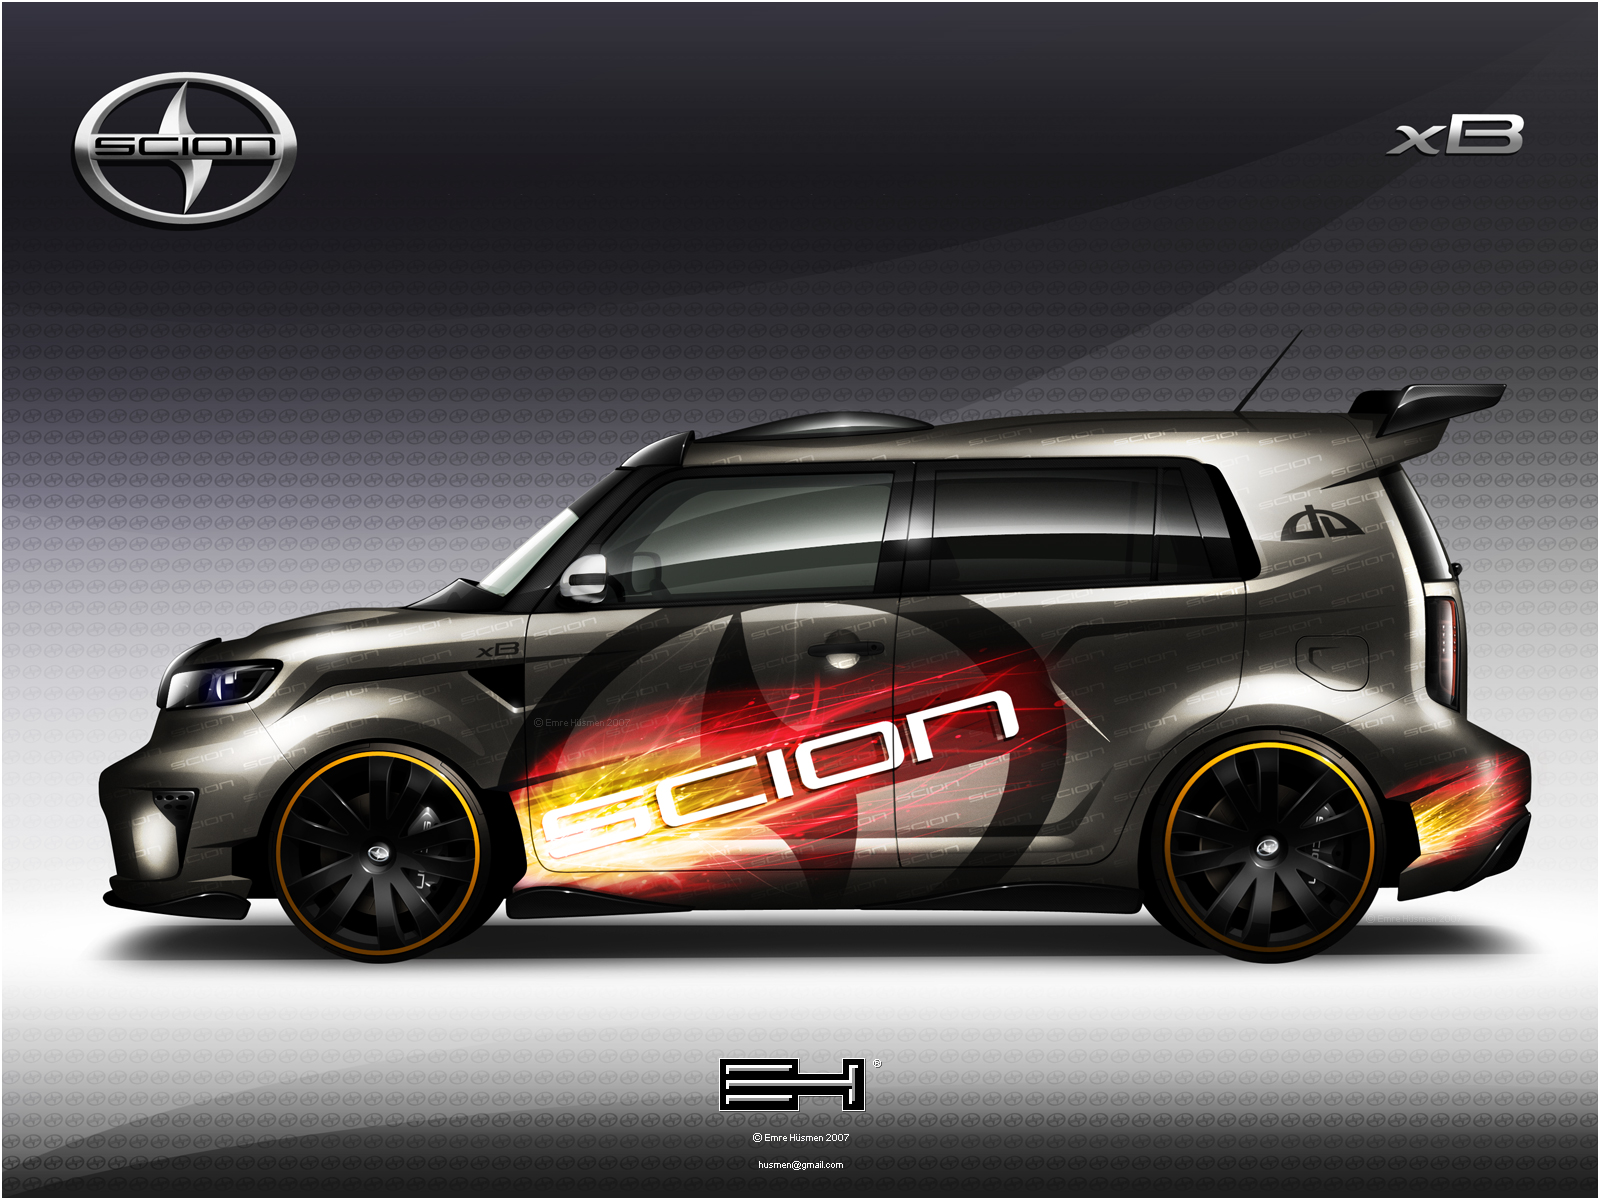 Jmvdesign 113 24 2008 Scion XB Skin By EmrEHusmen